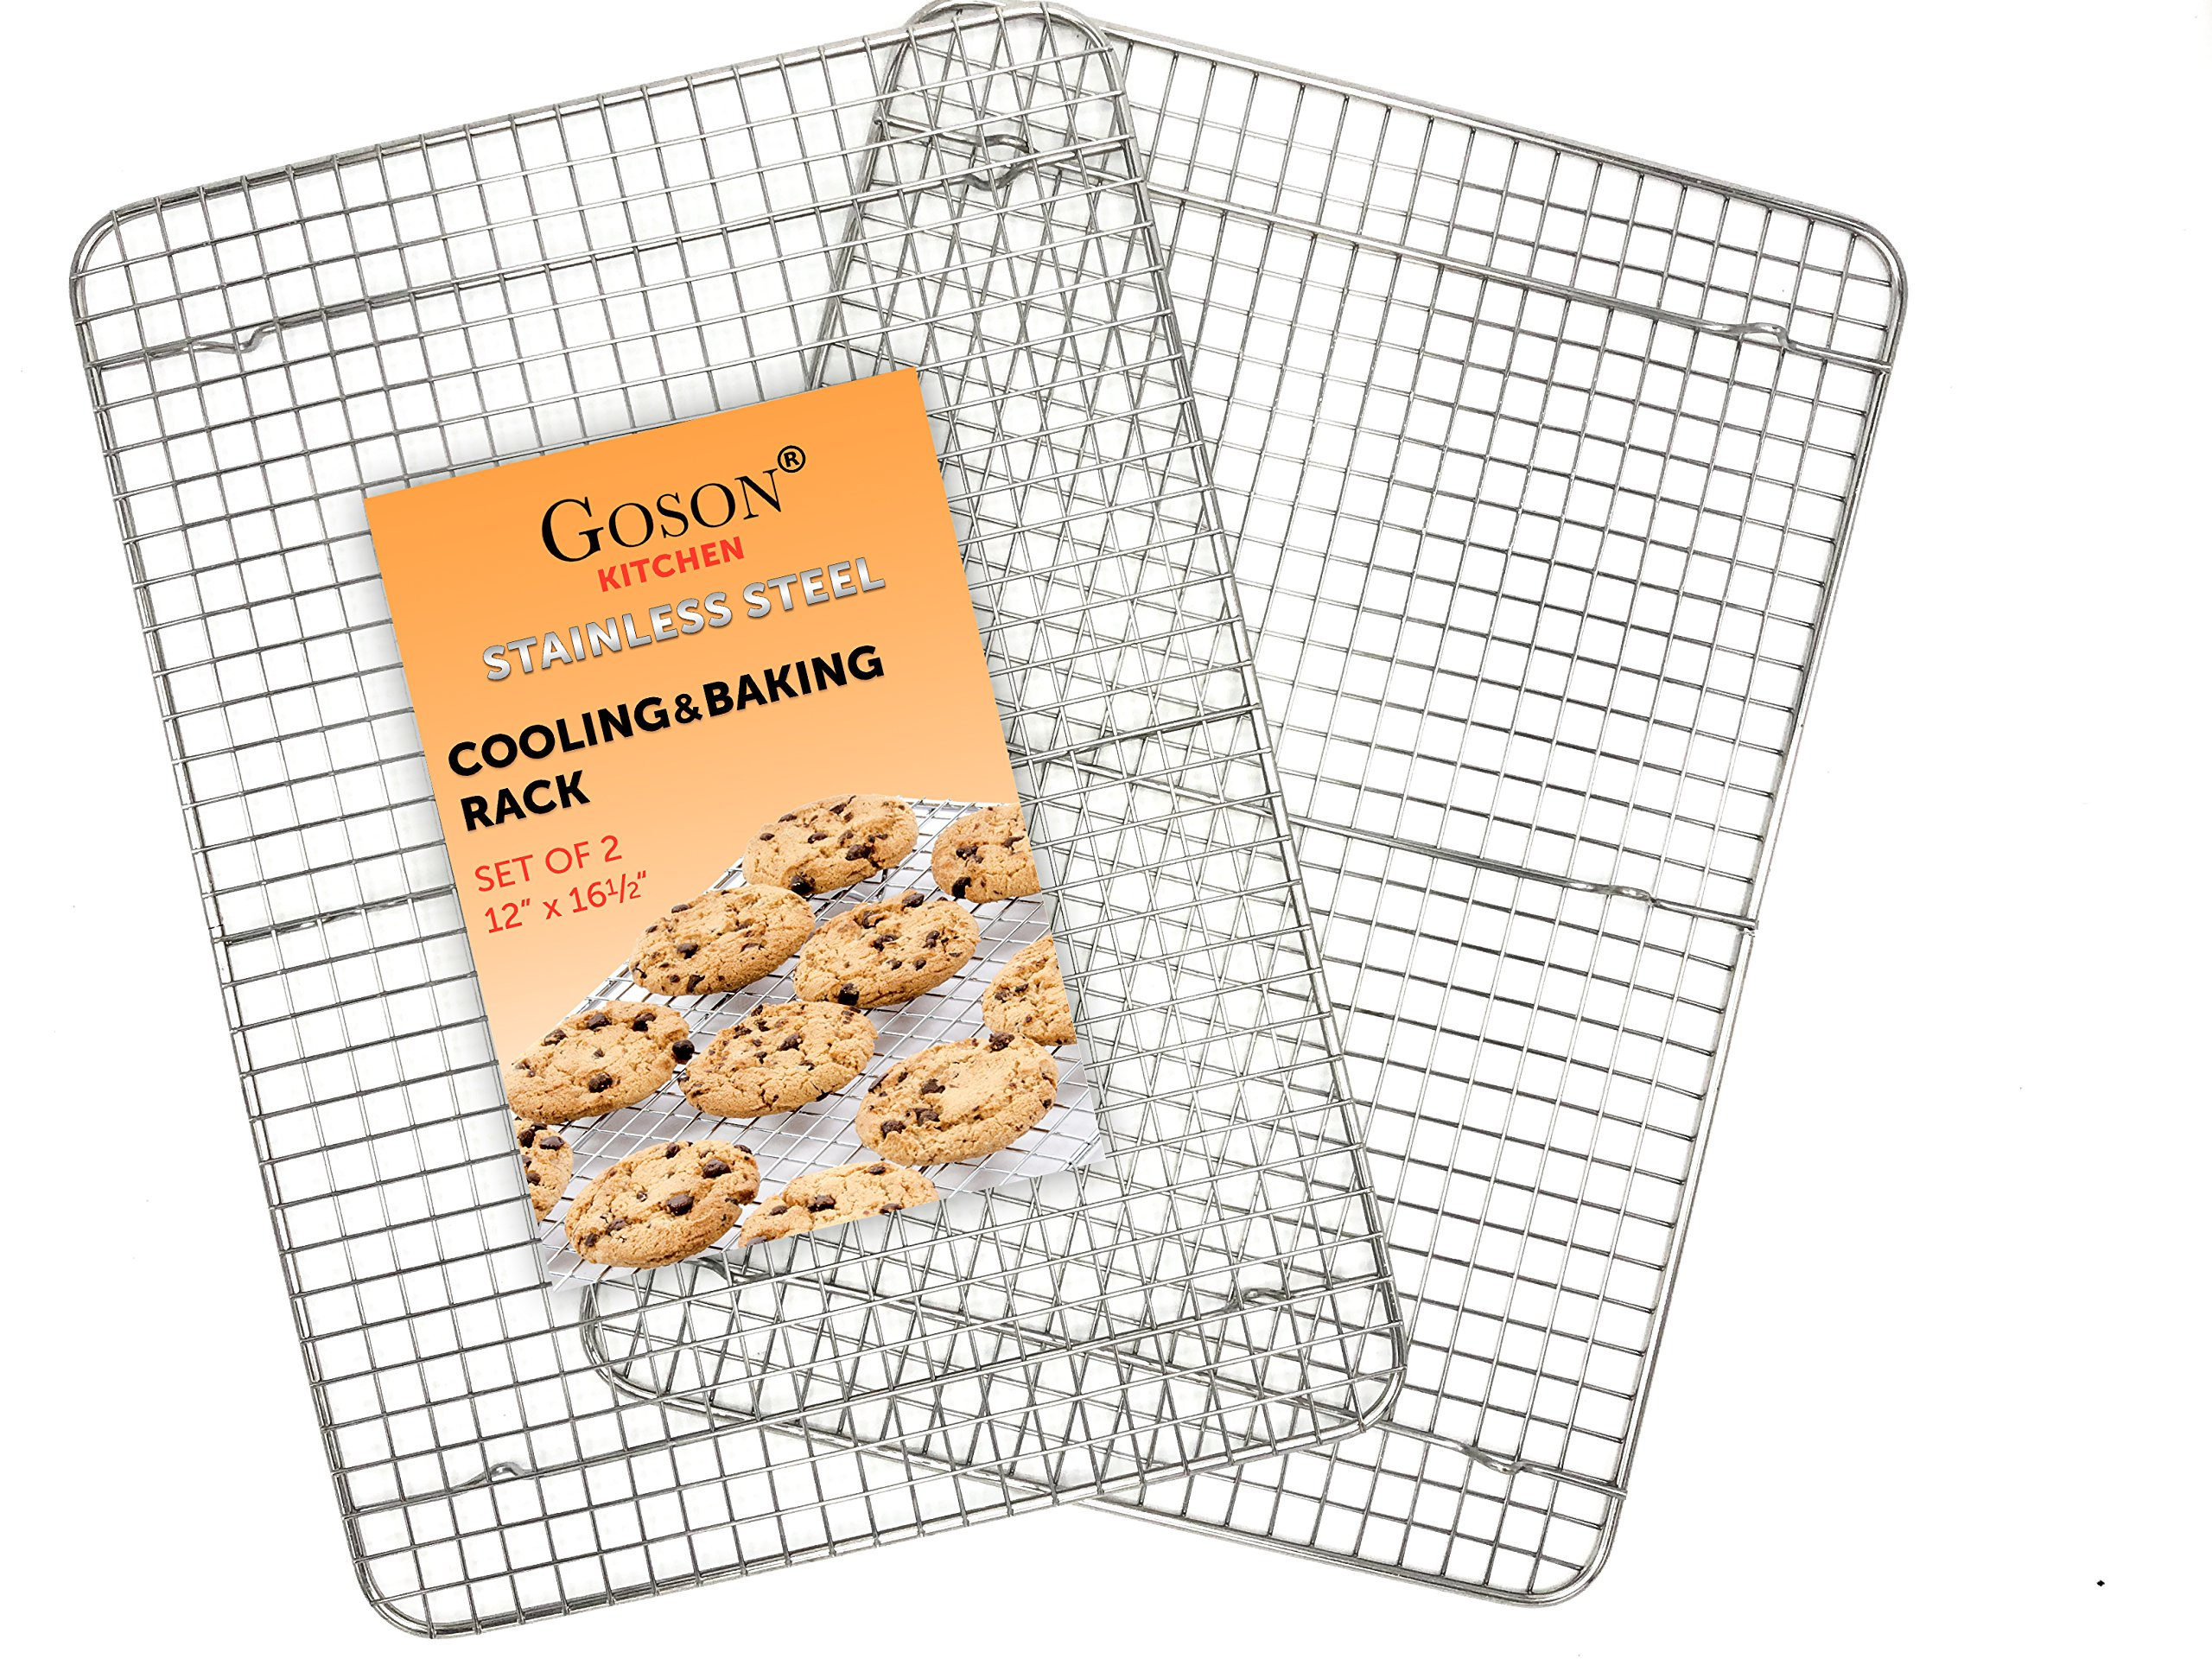 Goson Heavy Duty Stainless Steel Bakeware, Baking, Cooling, Oven Roasting, Broiler Rack, Half Size - 12in x 16.5in, Cross Wire, Pack of 2, Compatible with Various Baking Sheets Oven Pans